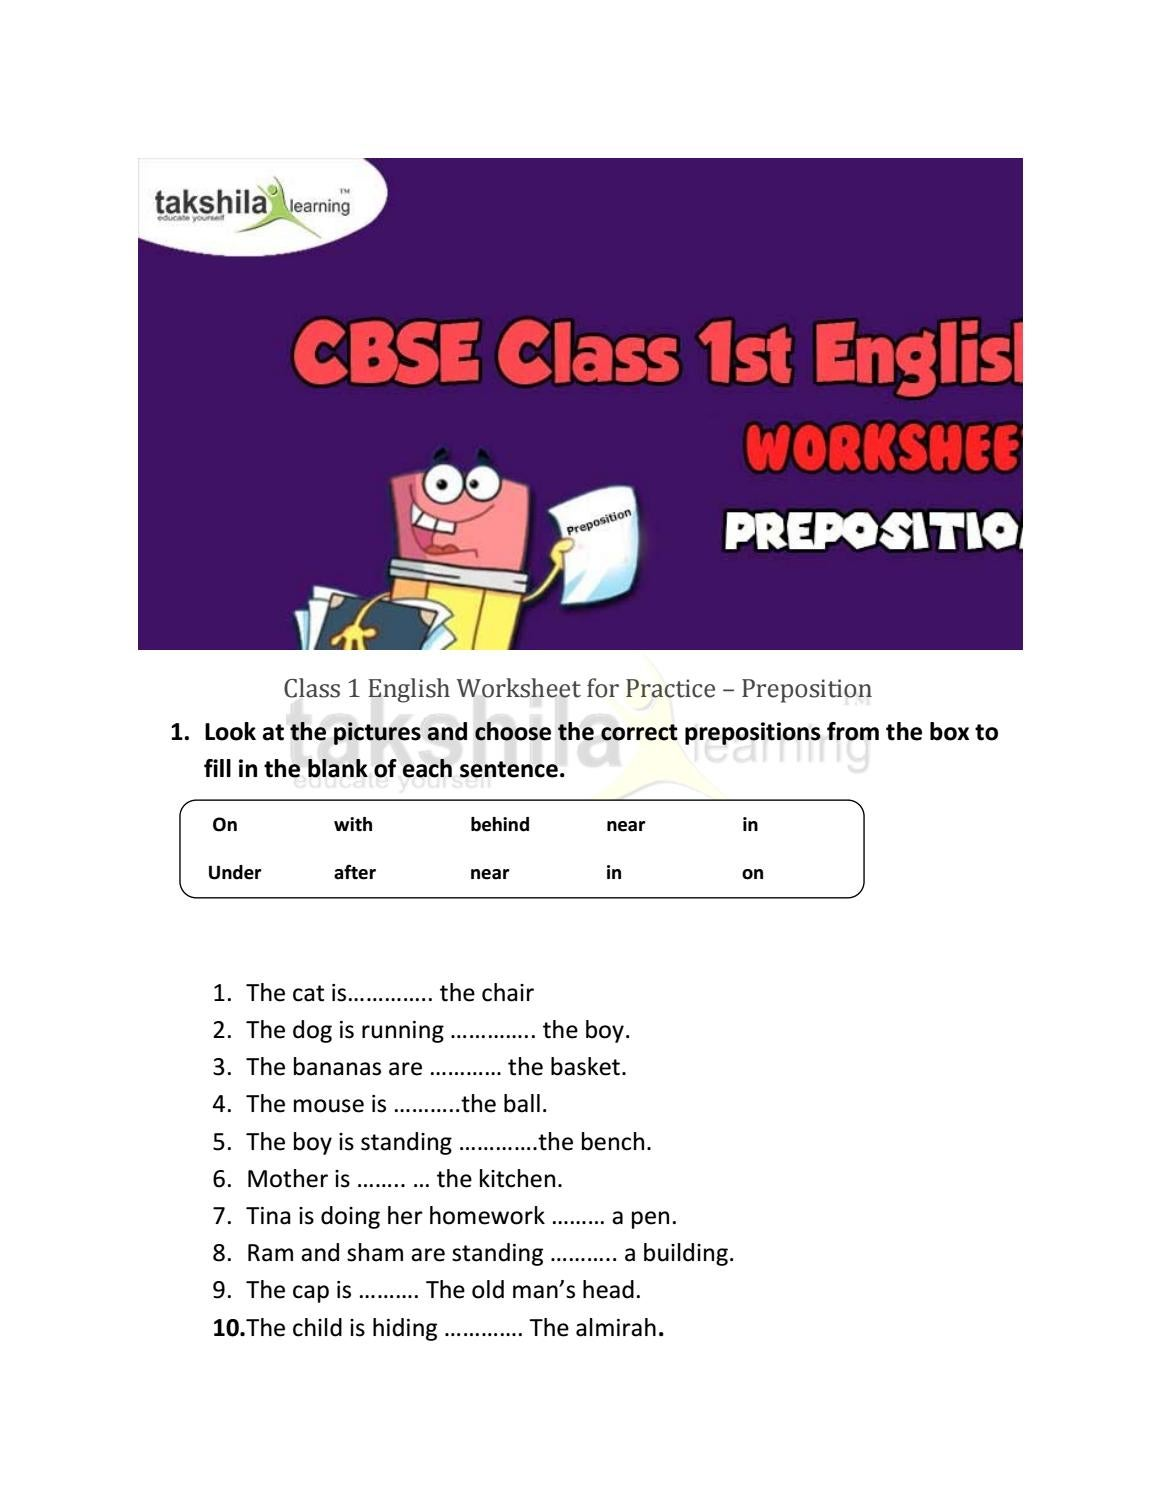 hight resolution of Class 1 english worksheet for practice preposition by Takshila learning    Online Classes - issuu